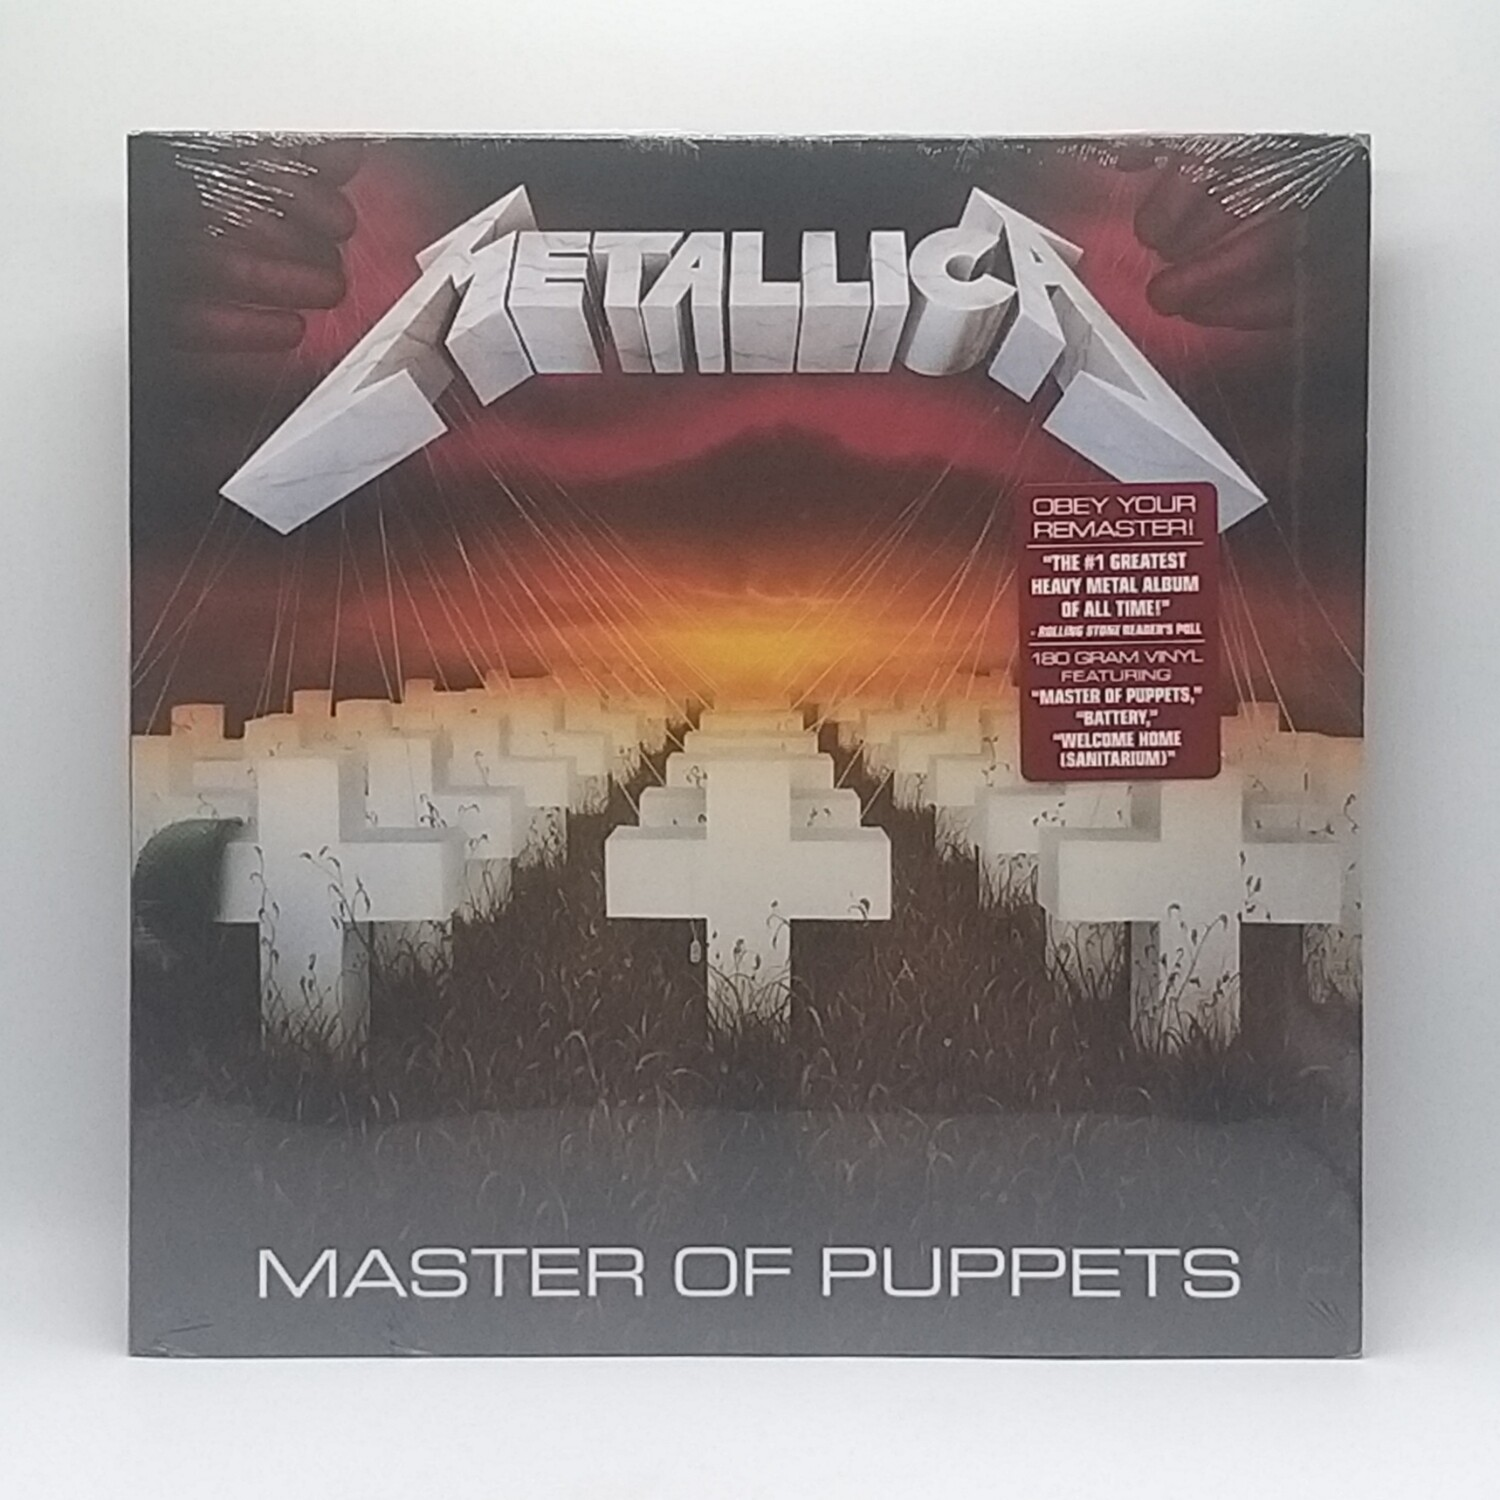 METALLICA -MASTER OF PUPPETS- LP